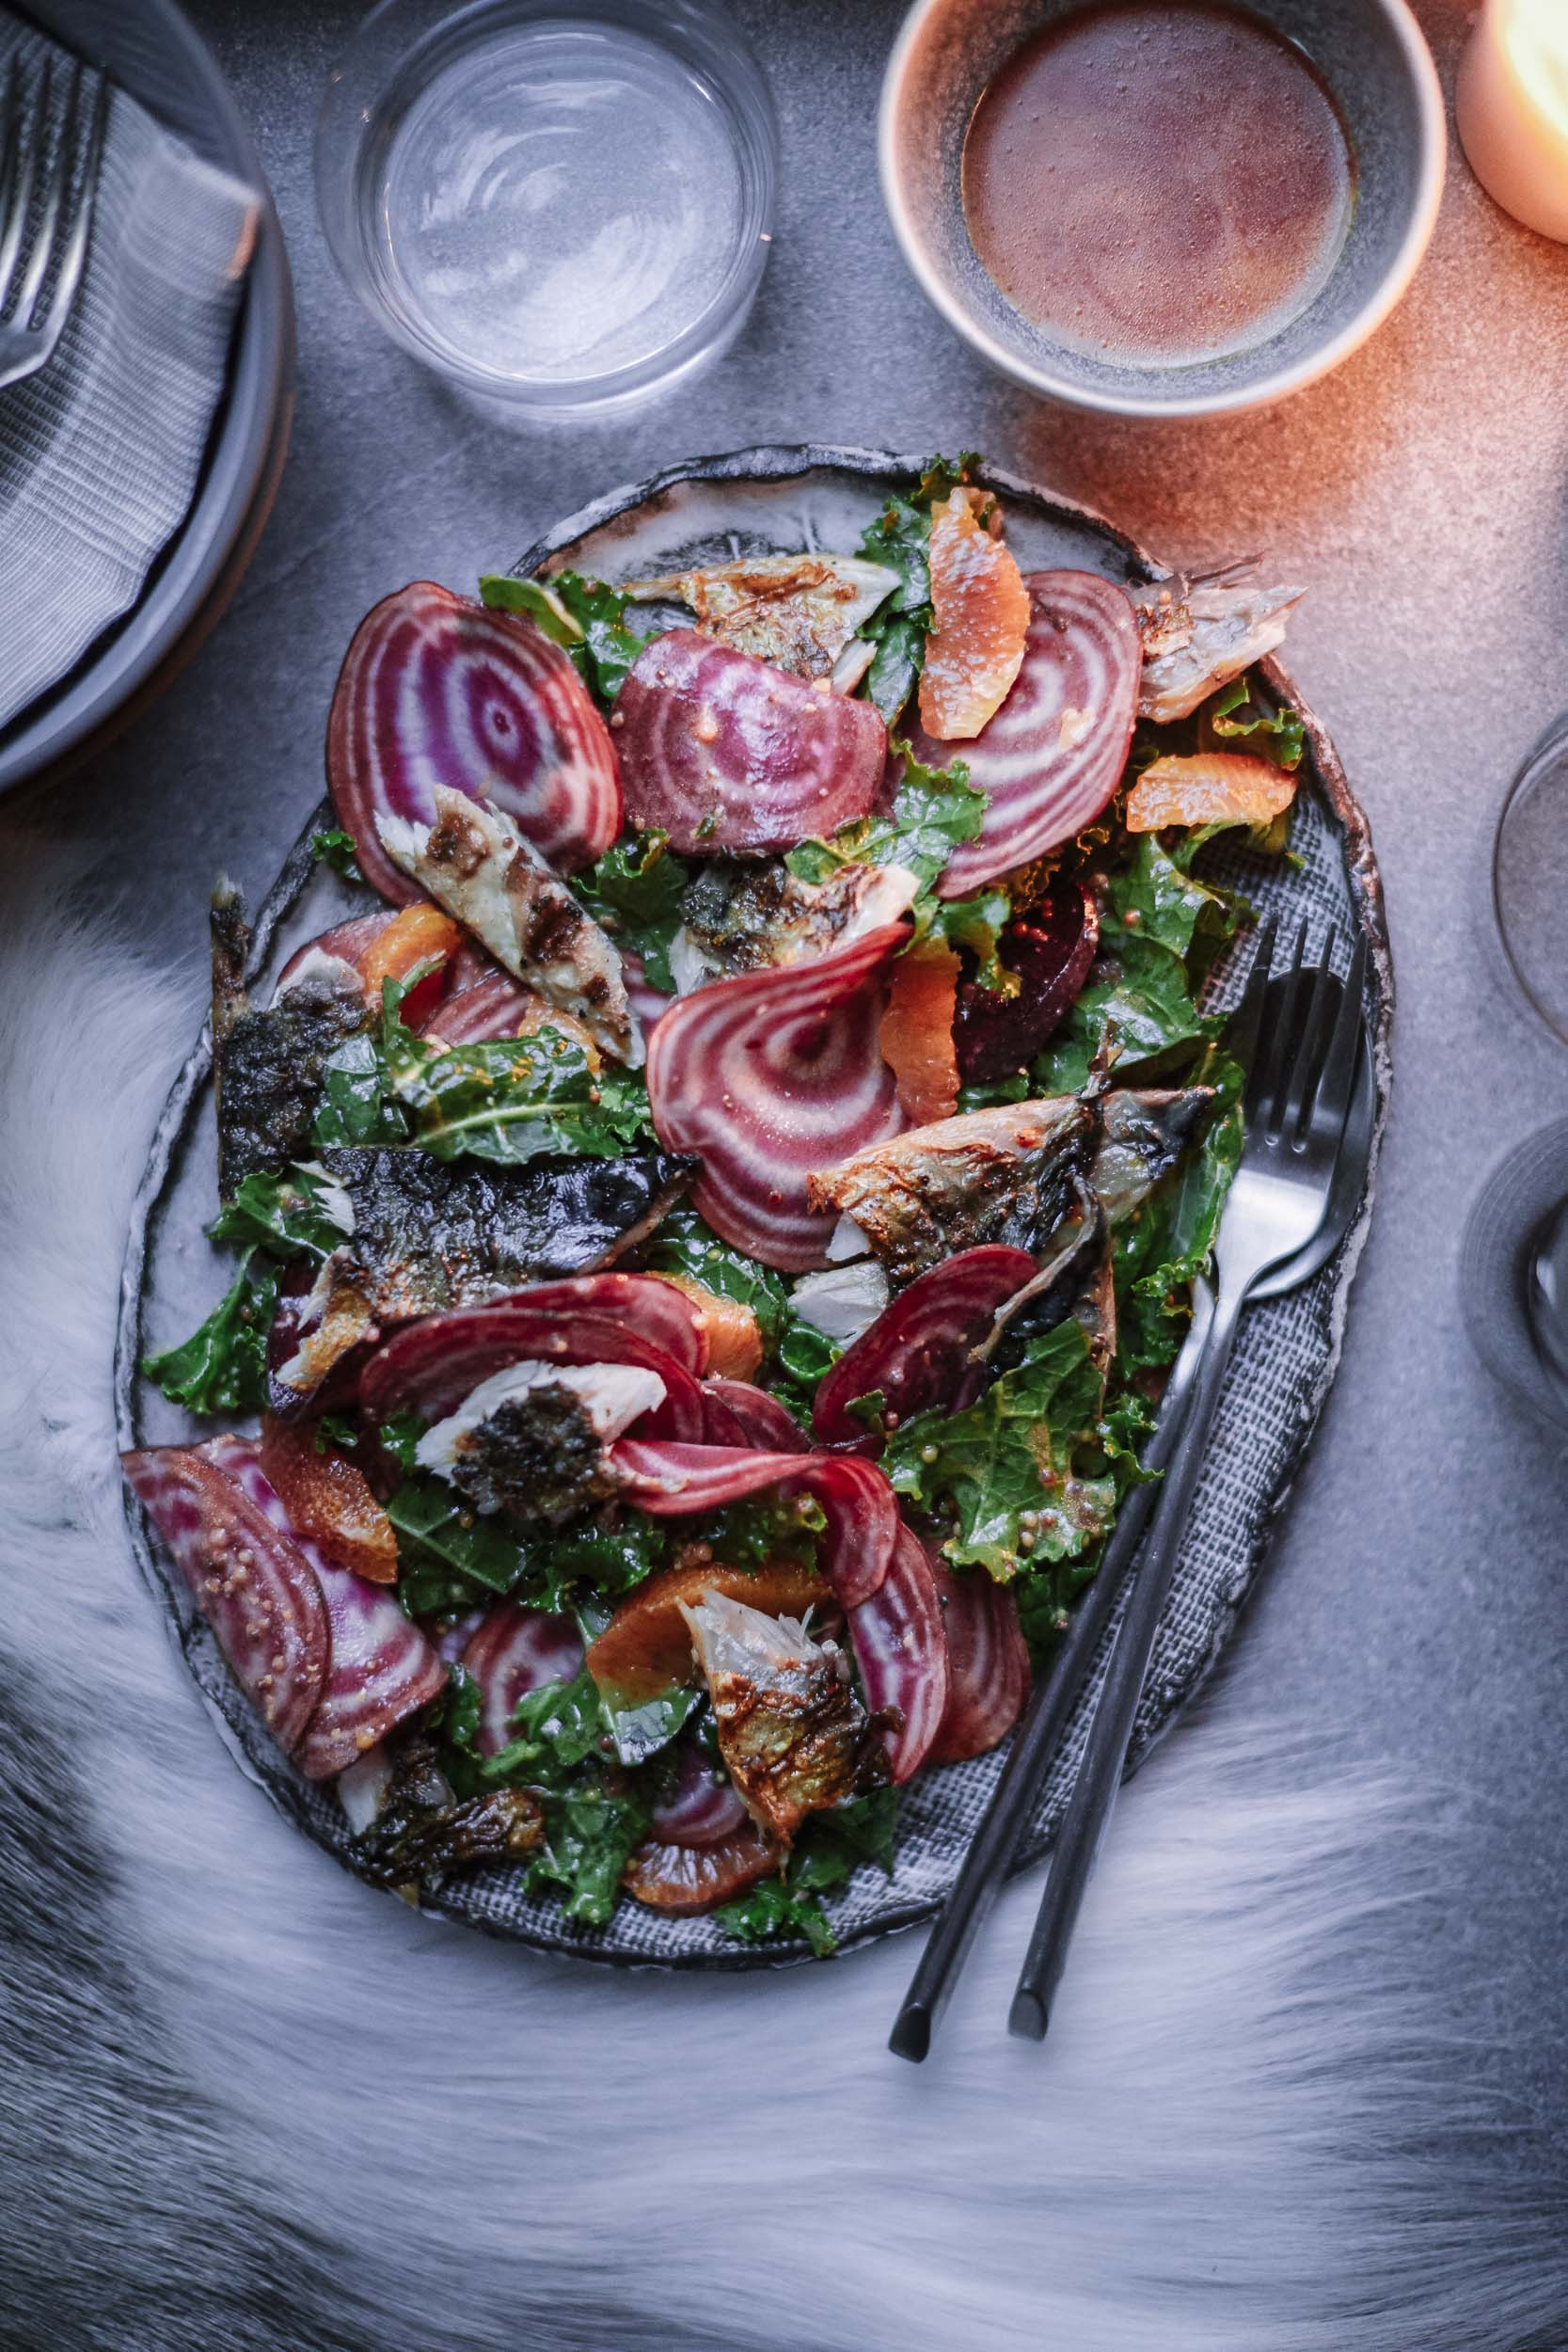 TOM_REGESTER_FOOD_PHOTOGRAPHER_180204_MACKEREL_BEETROOT_SALAD_0795_1.4.jpg